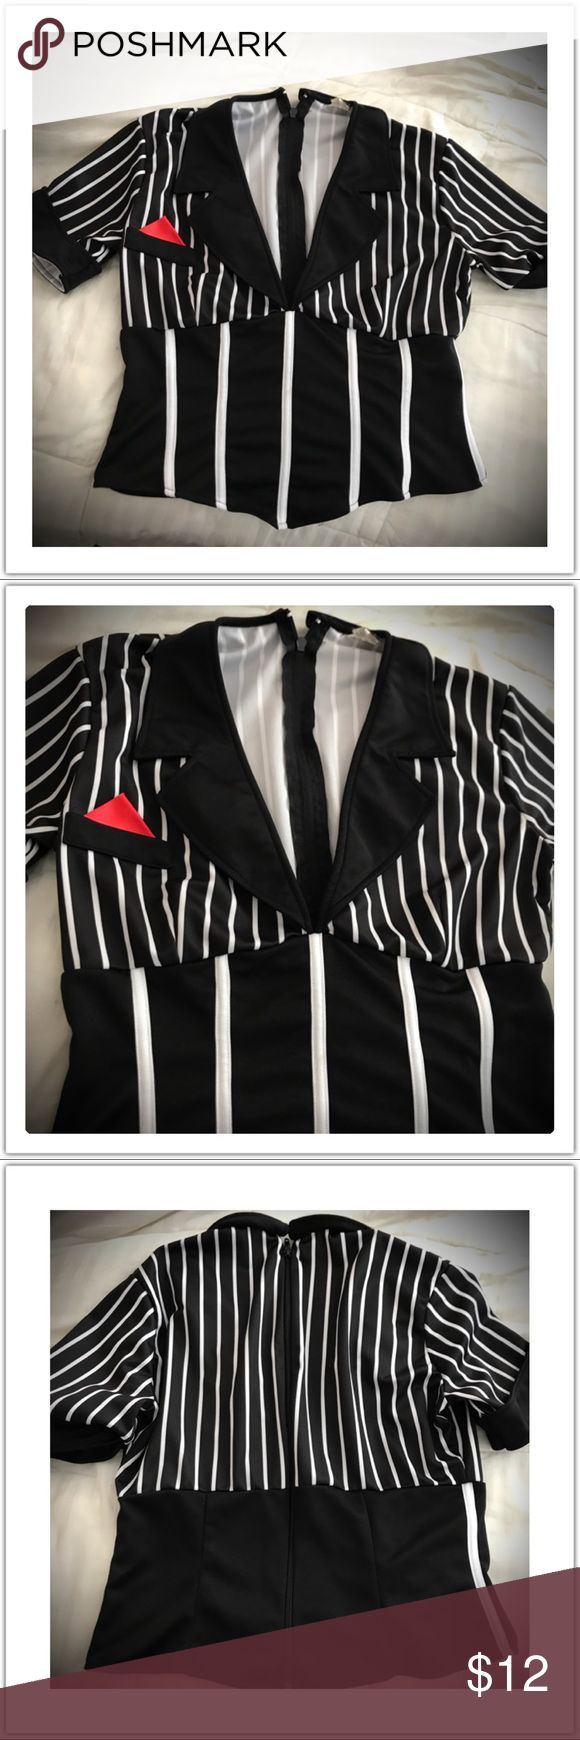 Leg Avenue Stripe tuxedo style event stripe top Black and white stiped top for any event in good condition by Leg Avenue leg avenue Other